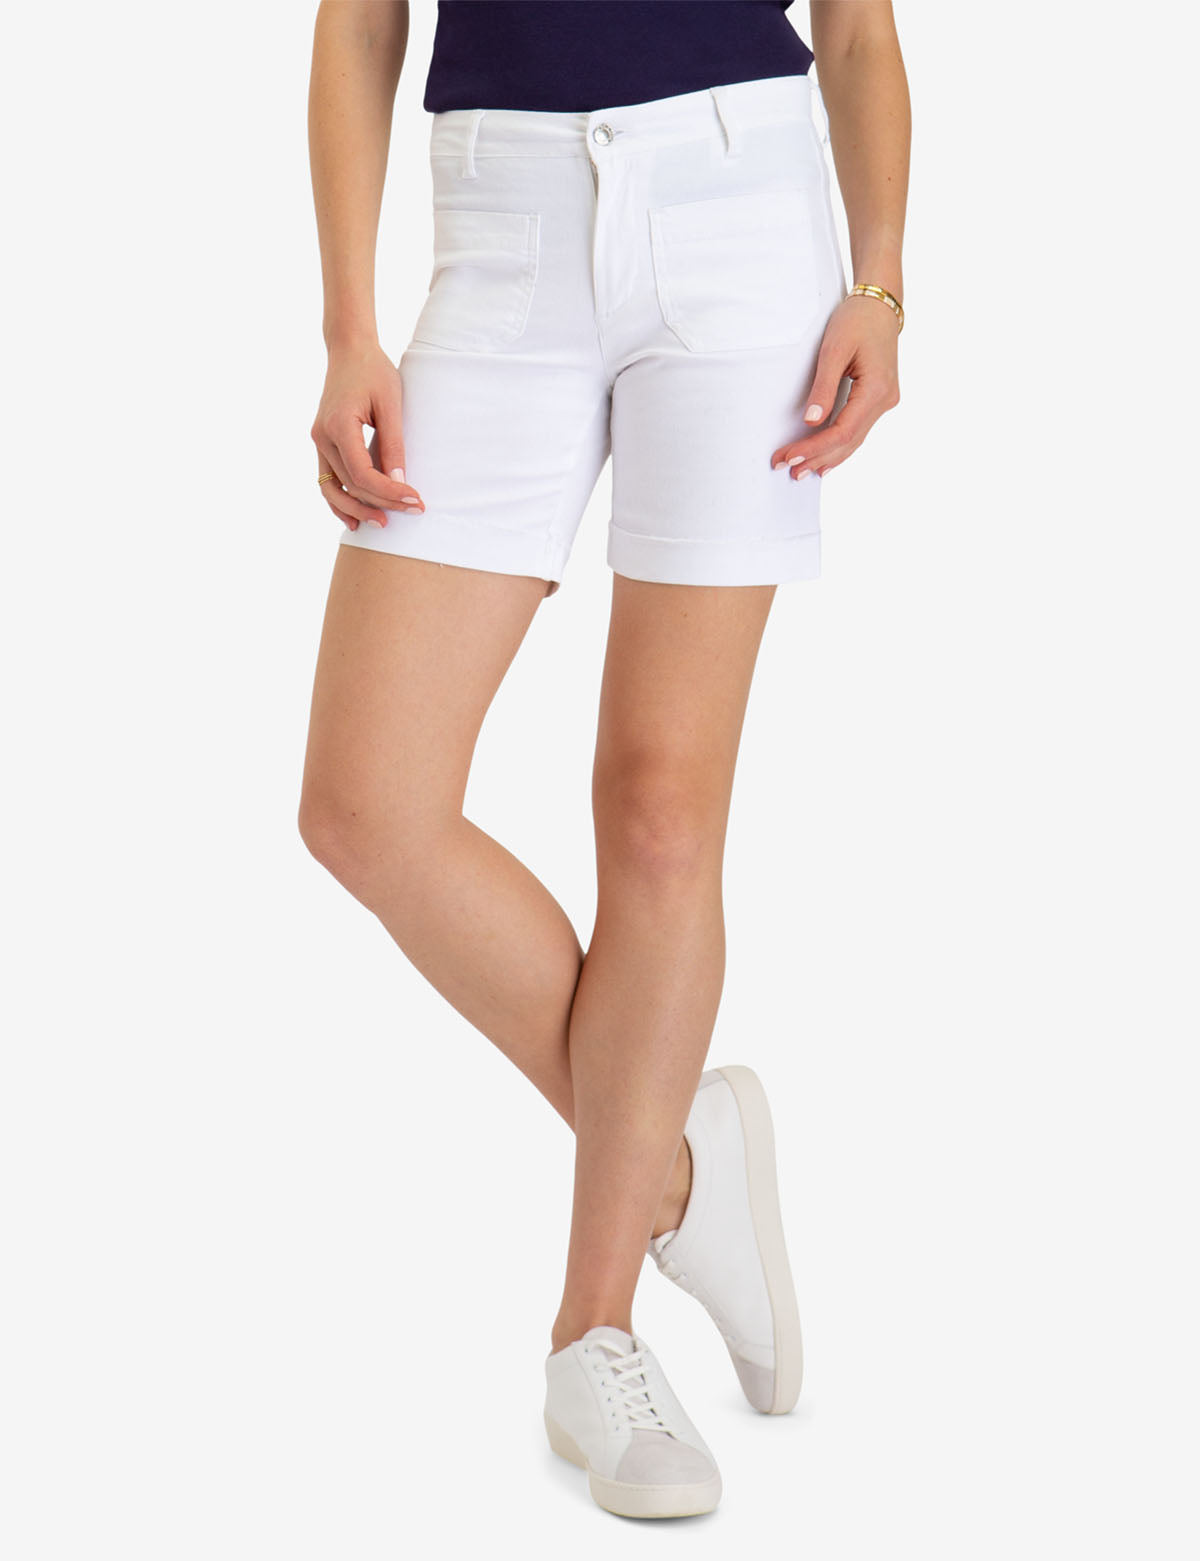 PATCH POCKET WHITE TWILL SHORTS - U.S. Polo Assn.